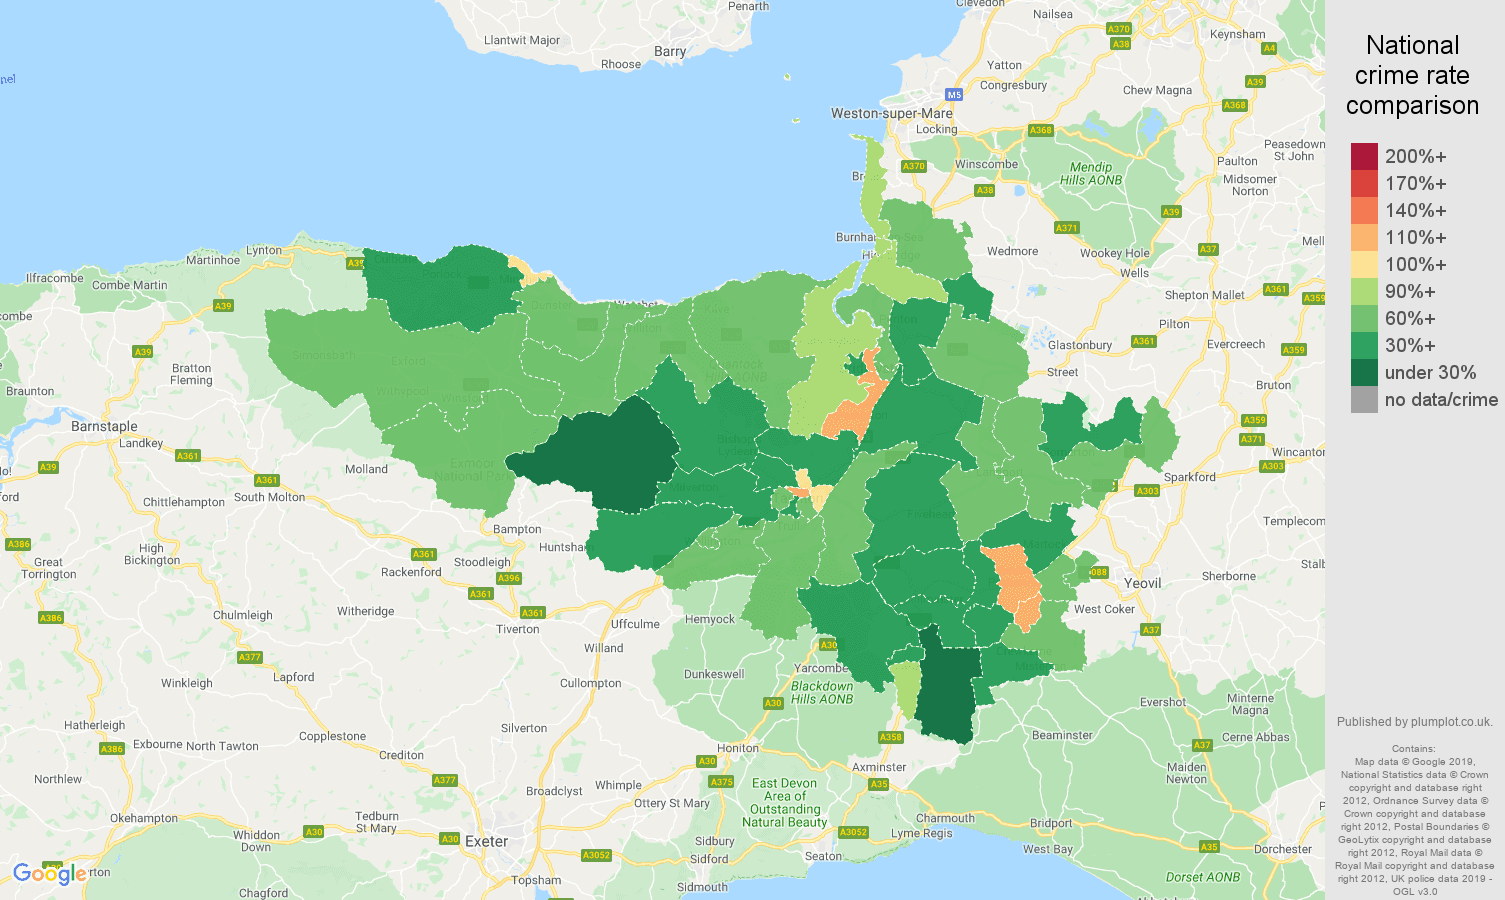 Taunton other theft crime rate comparison map